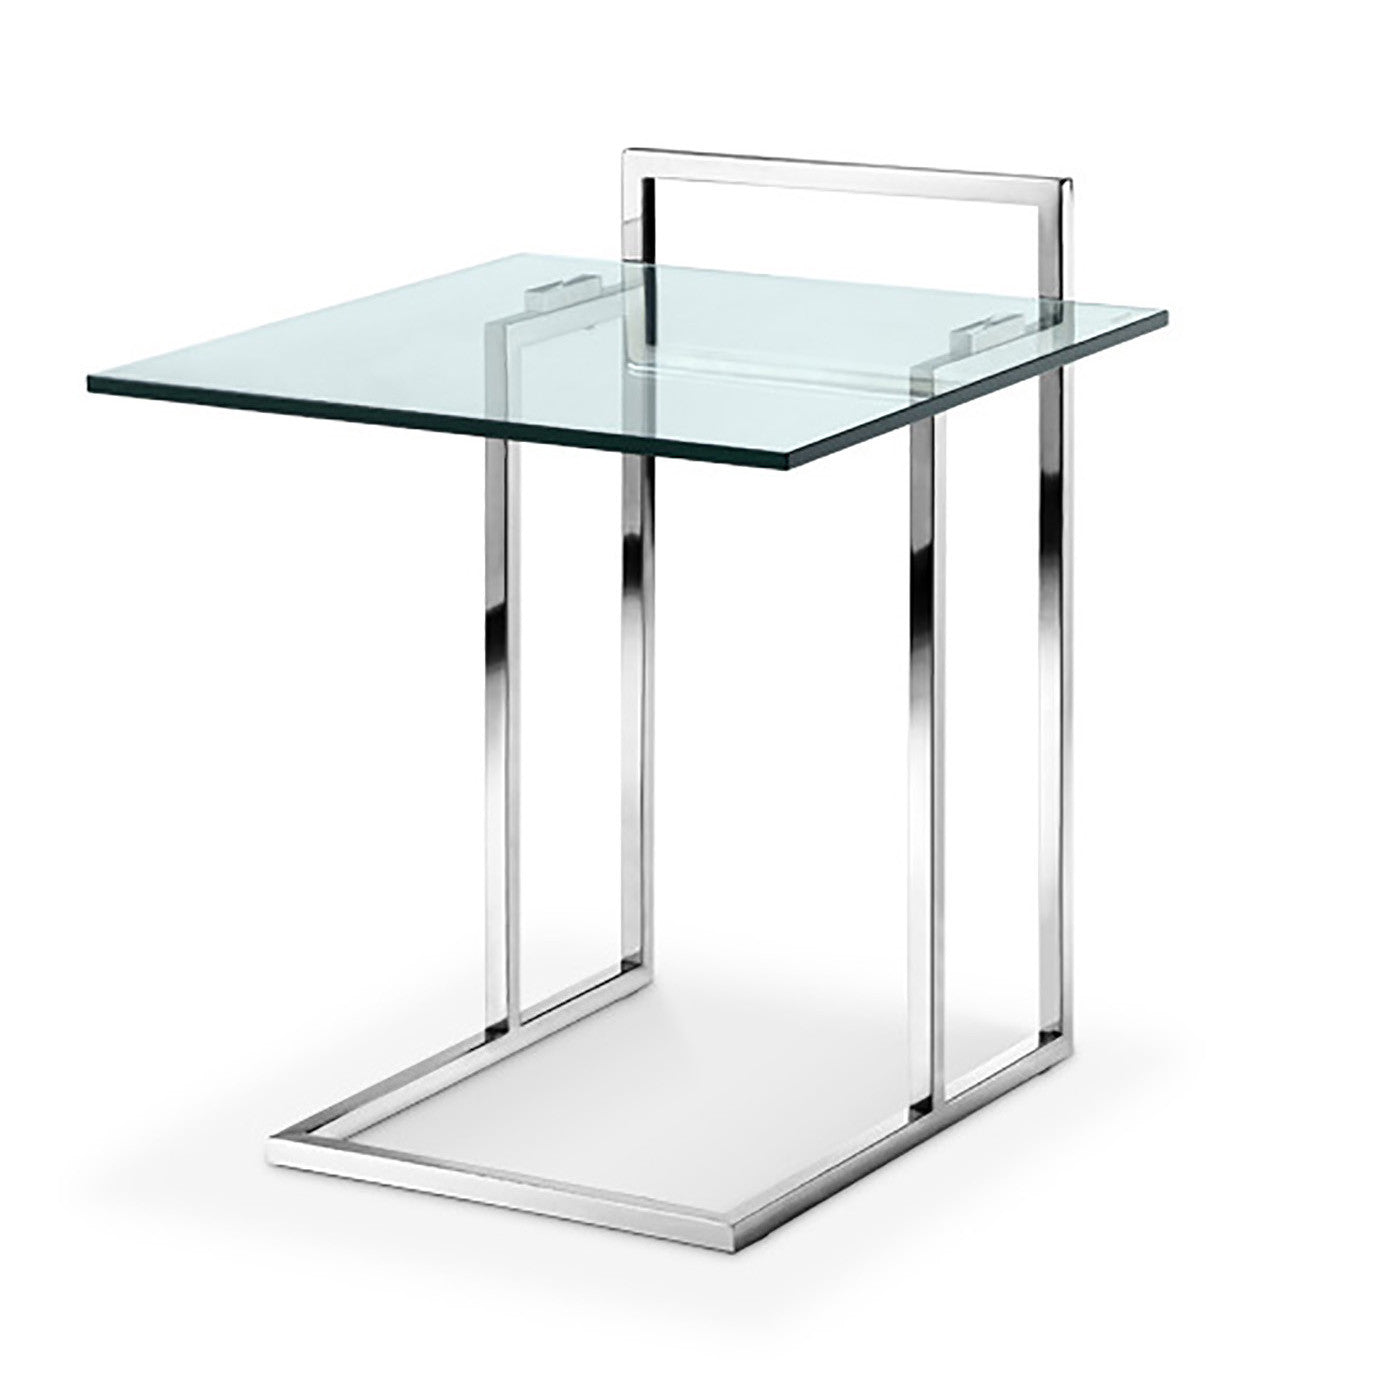 Sunland Side Table POLISHED STAINLESS STEEL. Sunland Side Table POLISHED  STAINLESS ...